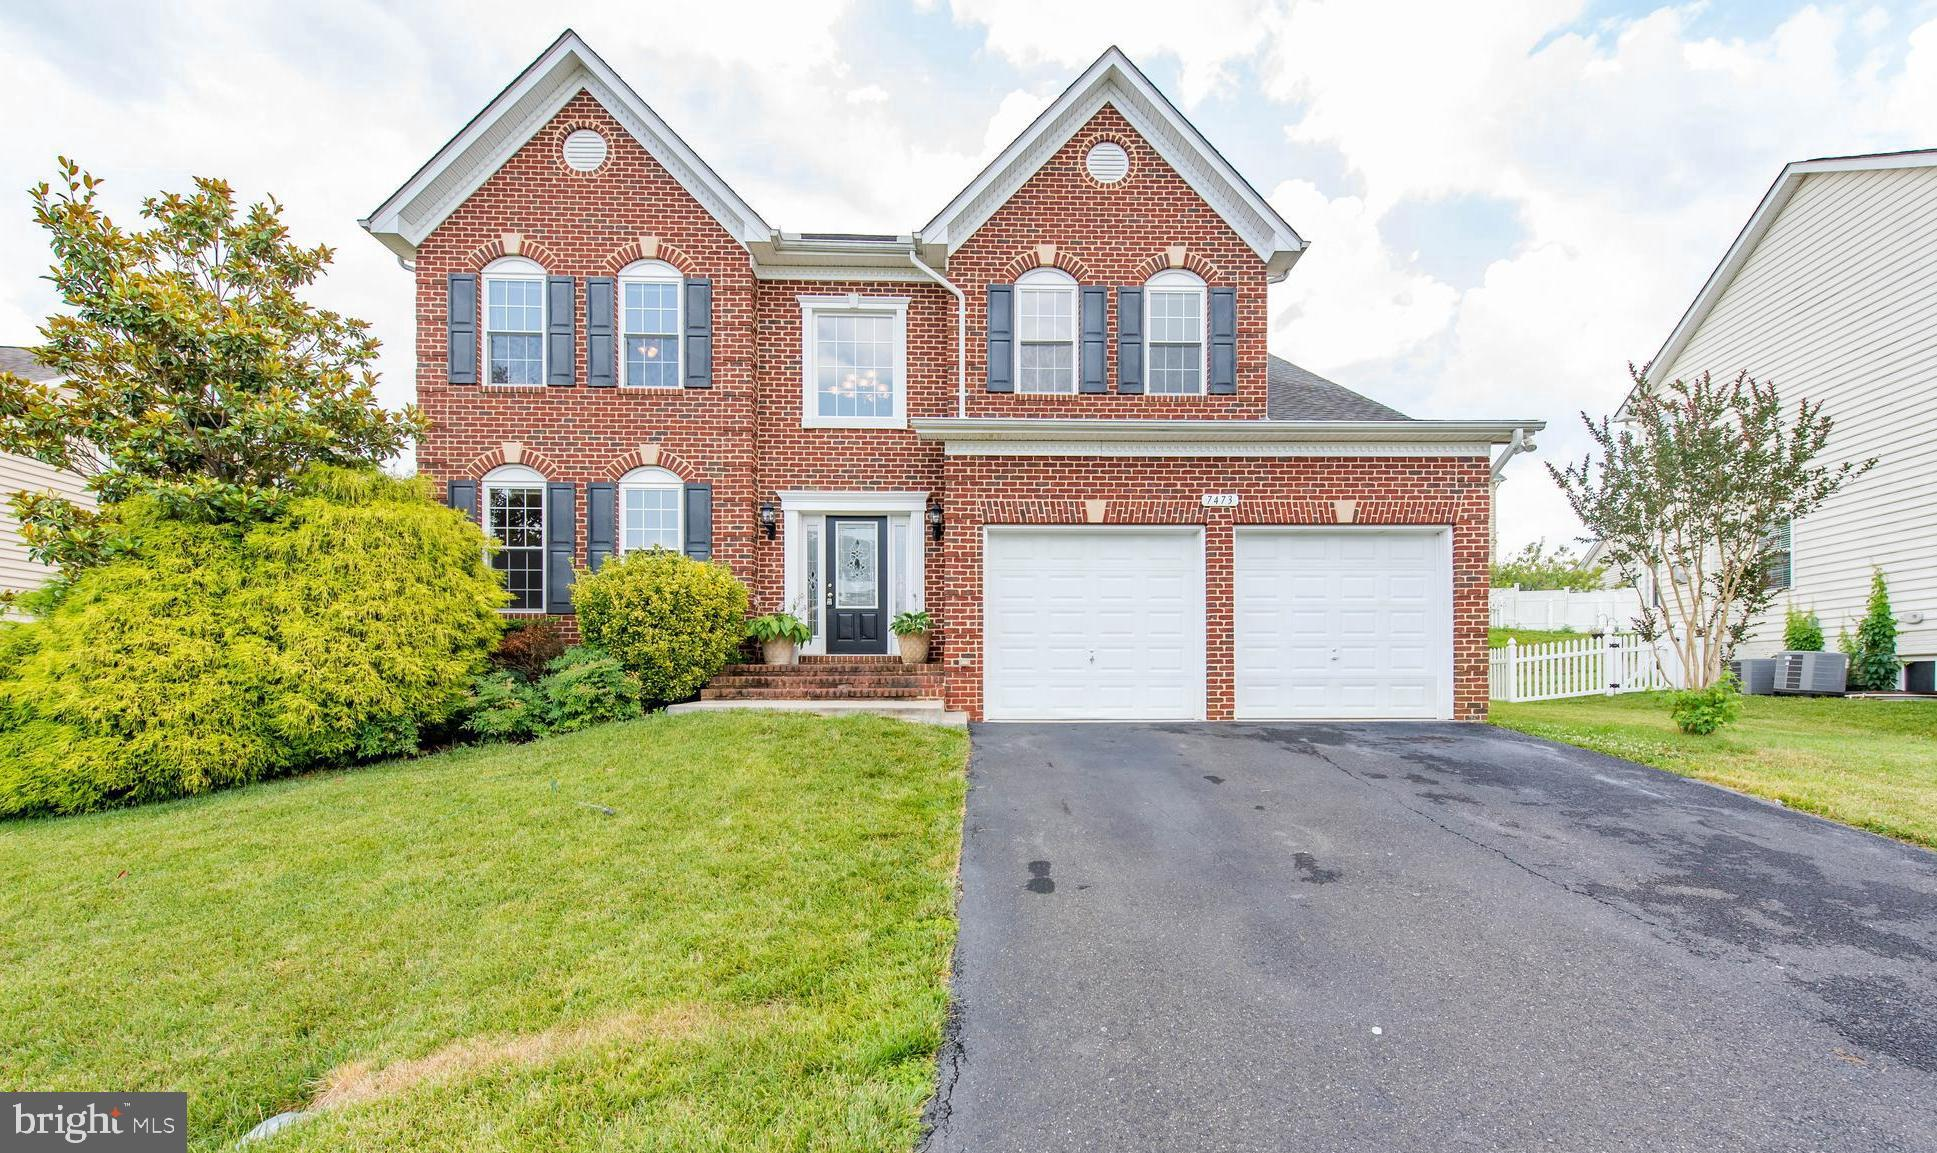 Appealing Chesapeake Village colonial offers 5 bedrooms, 3~ baths, and elegant interiors from top to